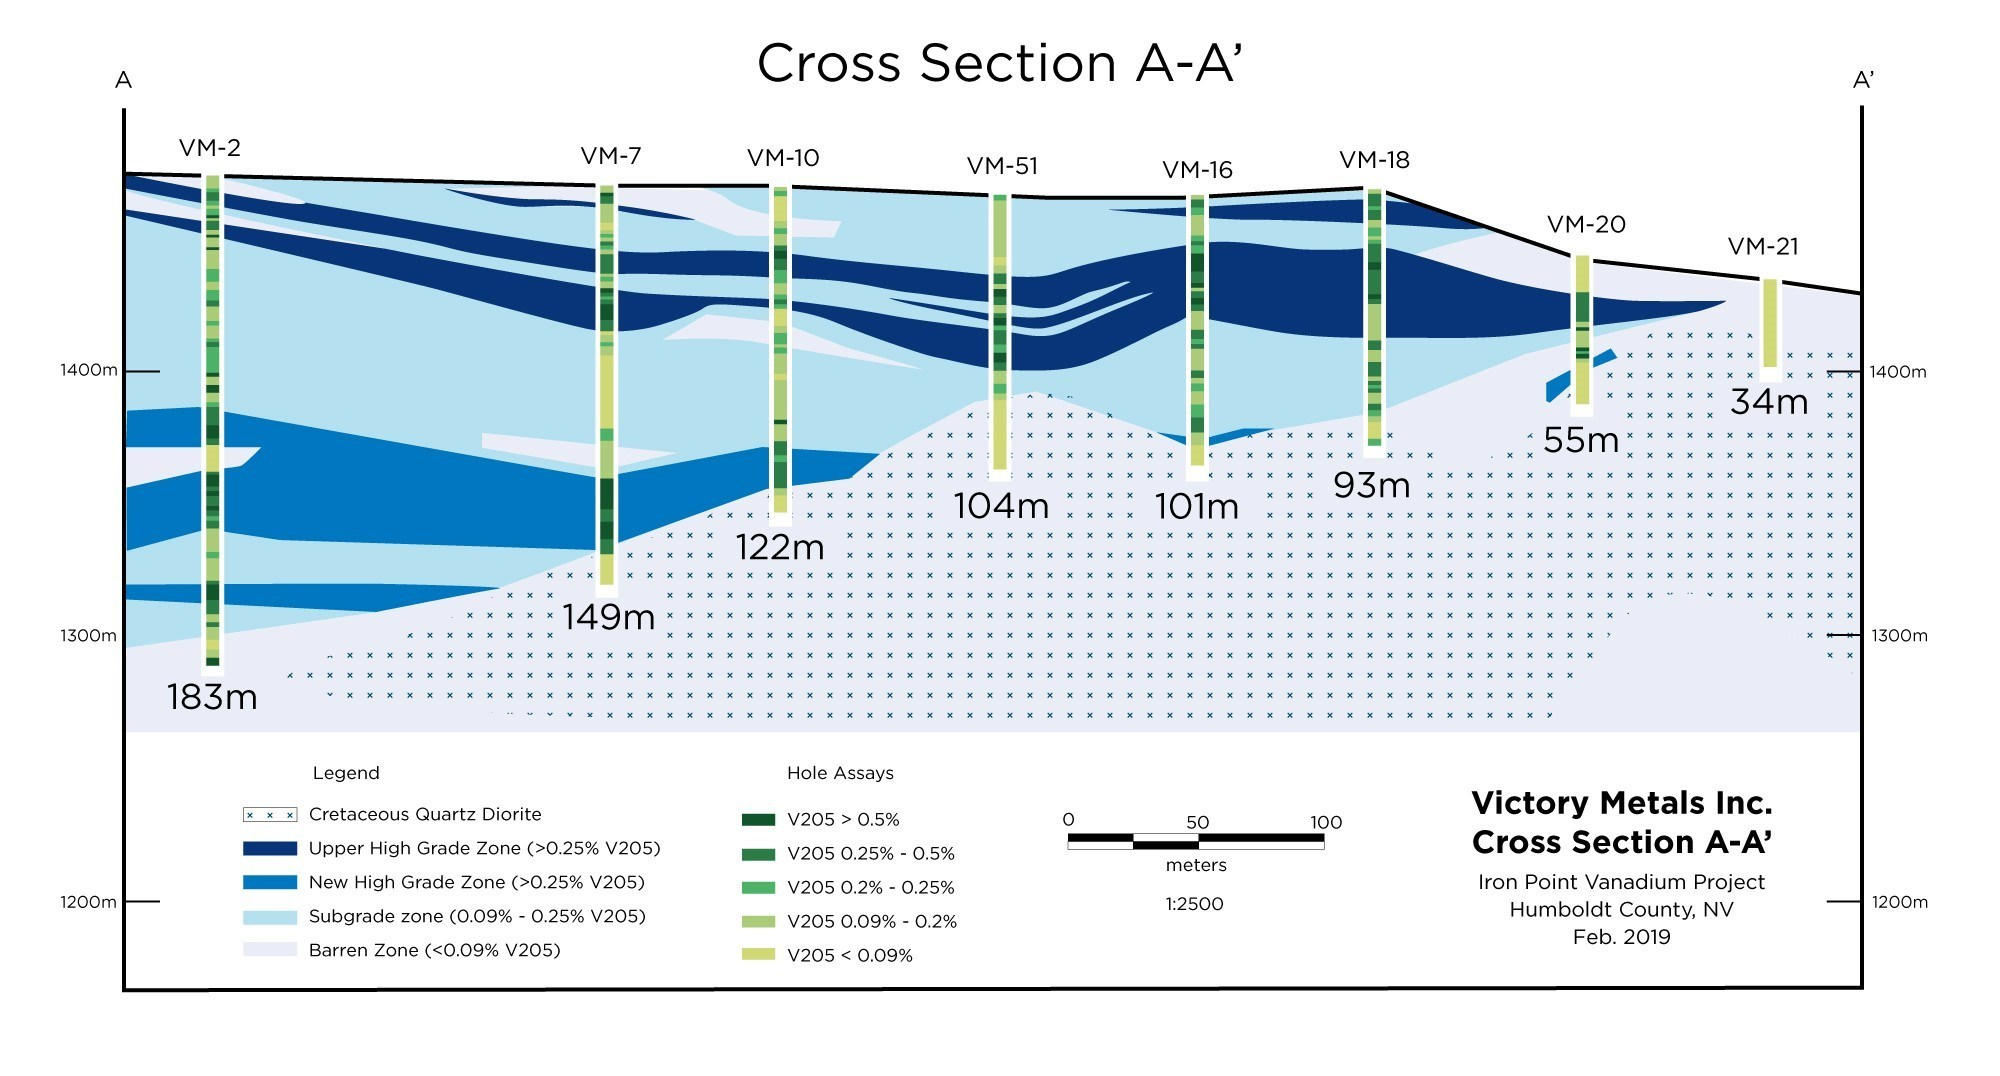 Figure 2. Cross section B-B' along Victory's drill pattern showing grade and distribution of vanadium mineralization in relation to the basic geologic framework. (CNW Group/Victory Metals Inc)